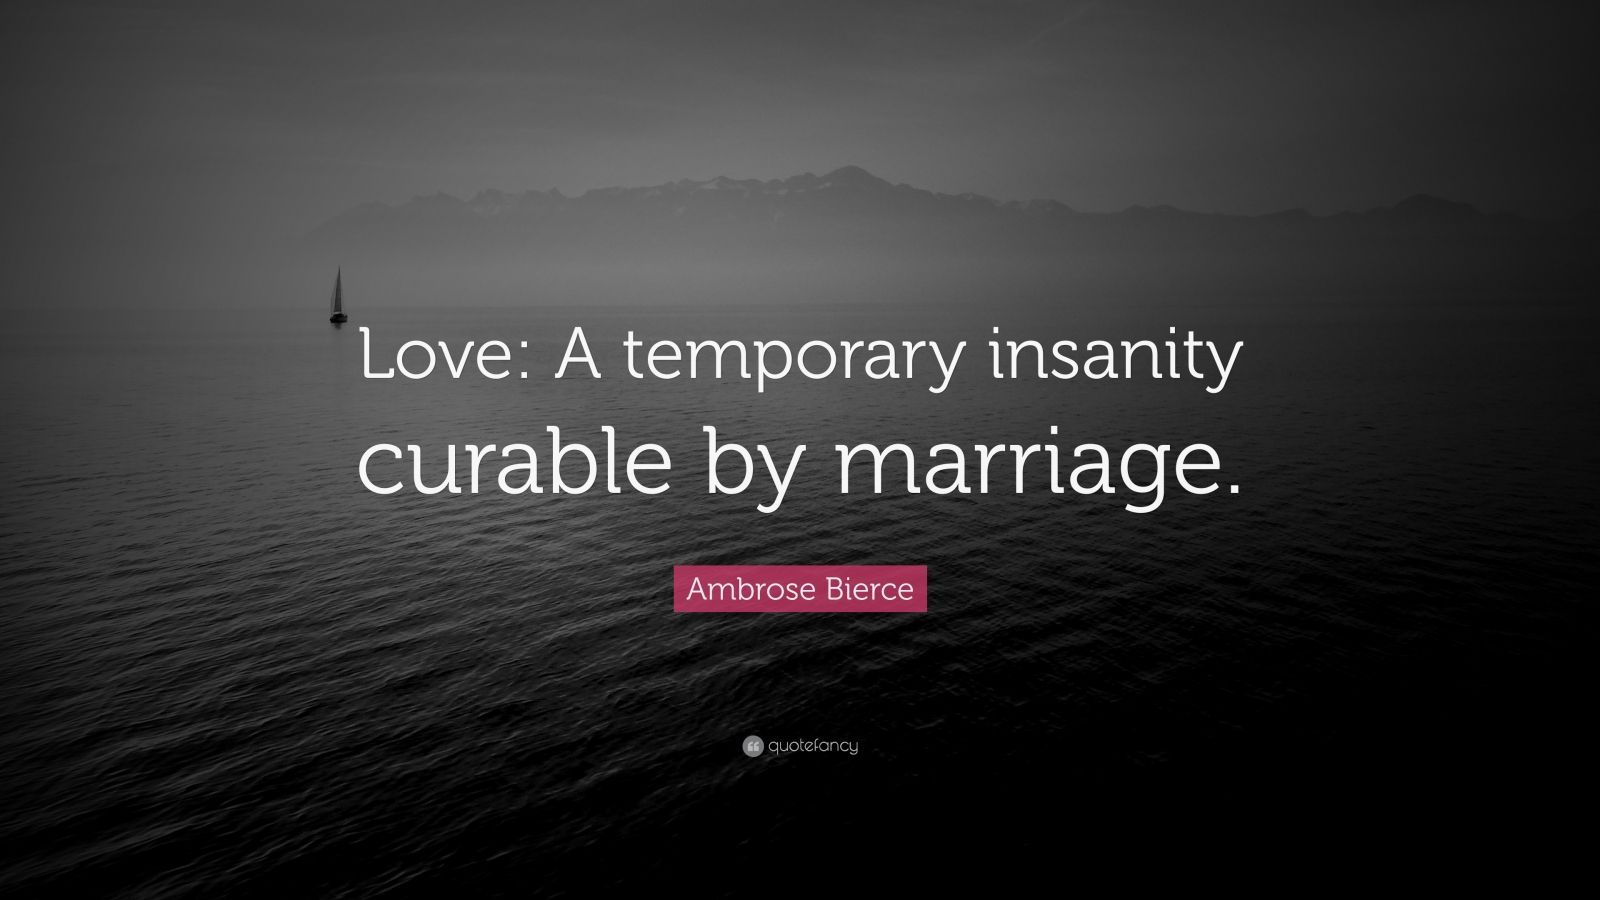 Ambrose Bierce Quote: Love: A temporary insanity curable